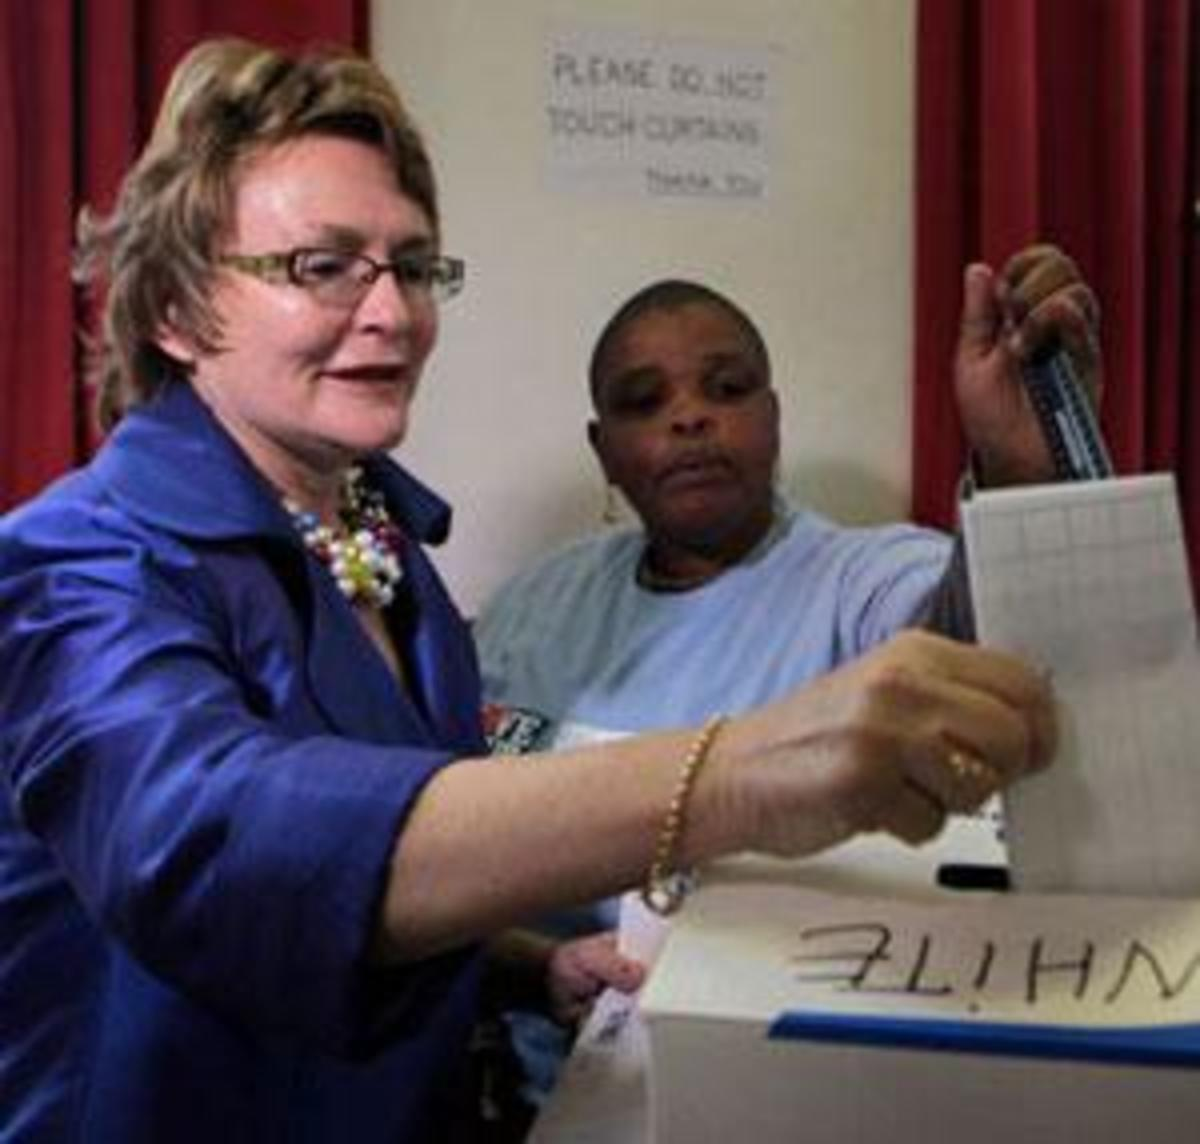 Helen Zille(Leader of the DA) votes on Wednesday